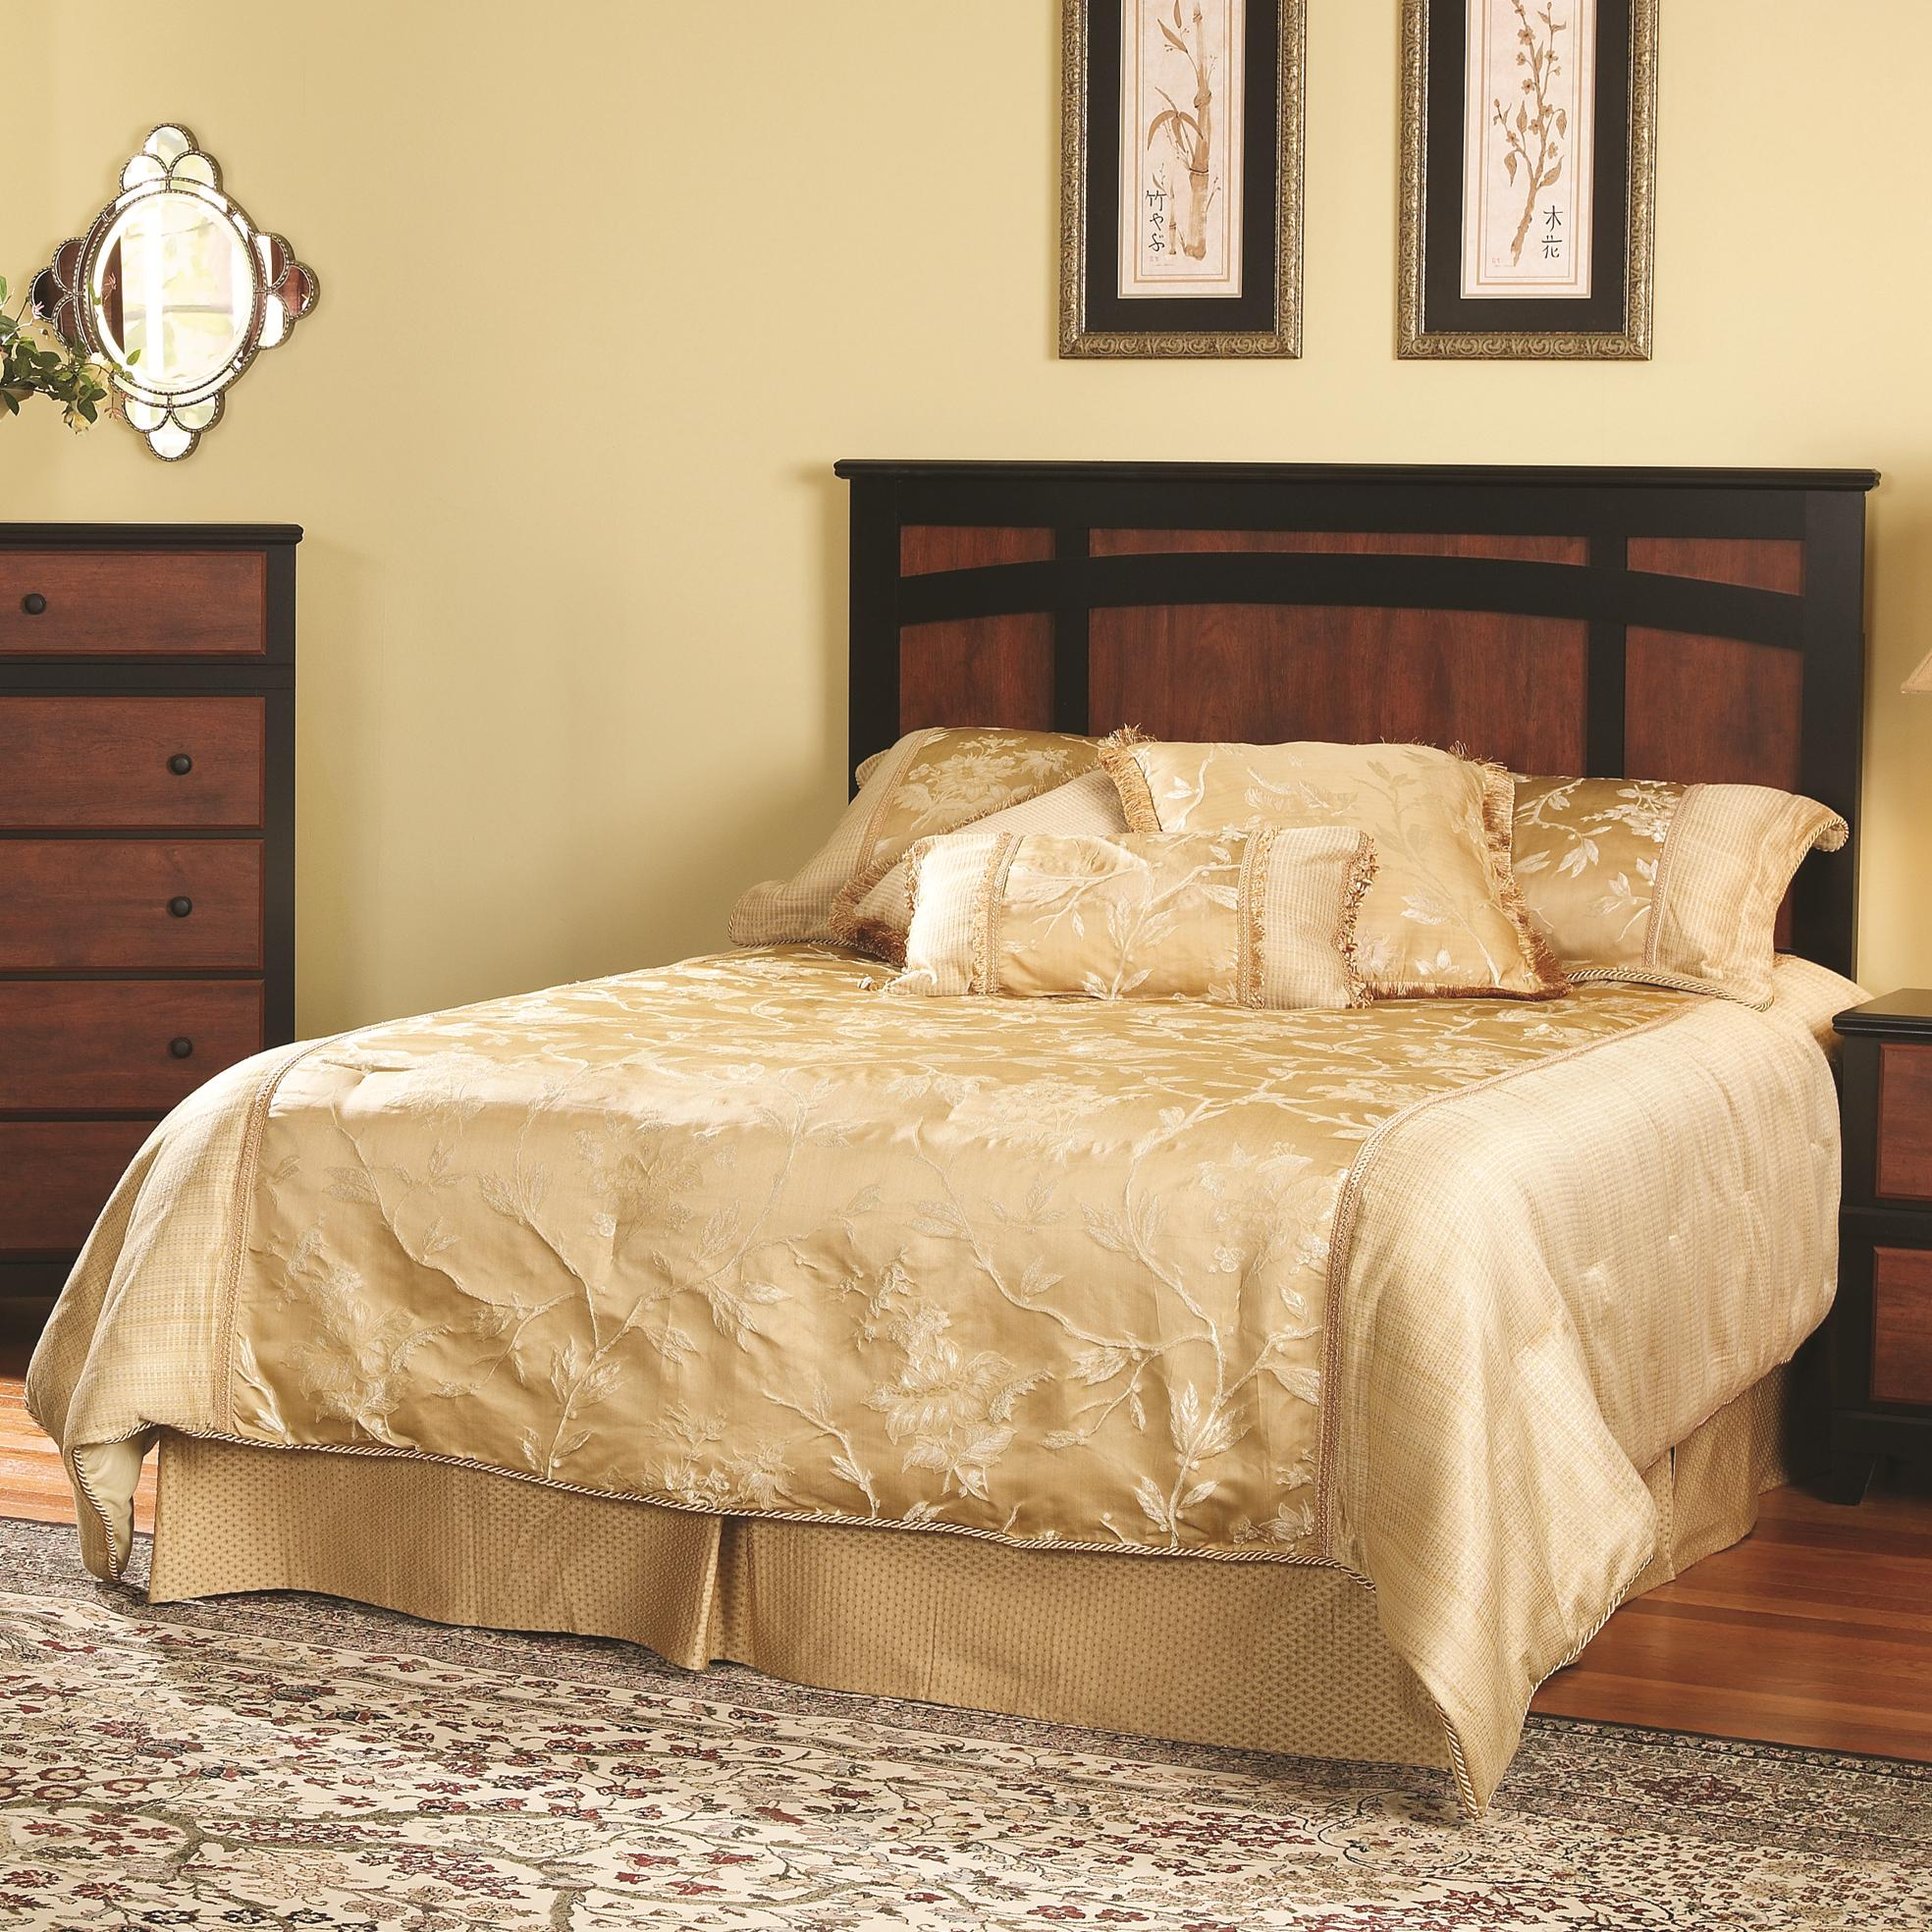 49000 Series King Headboard by Perdue at Del Sol Furniture